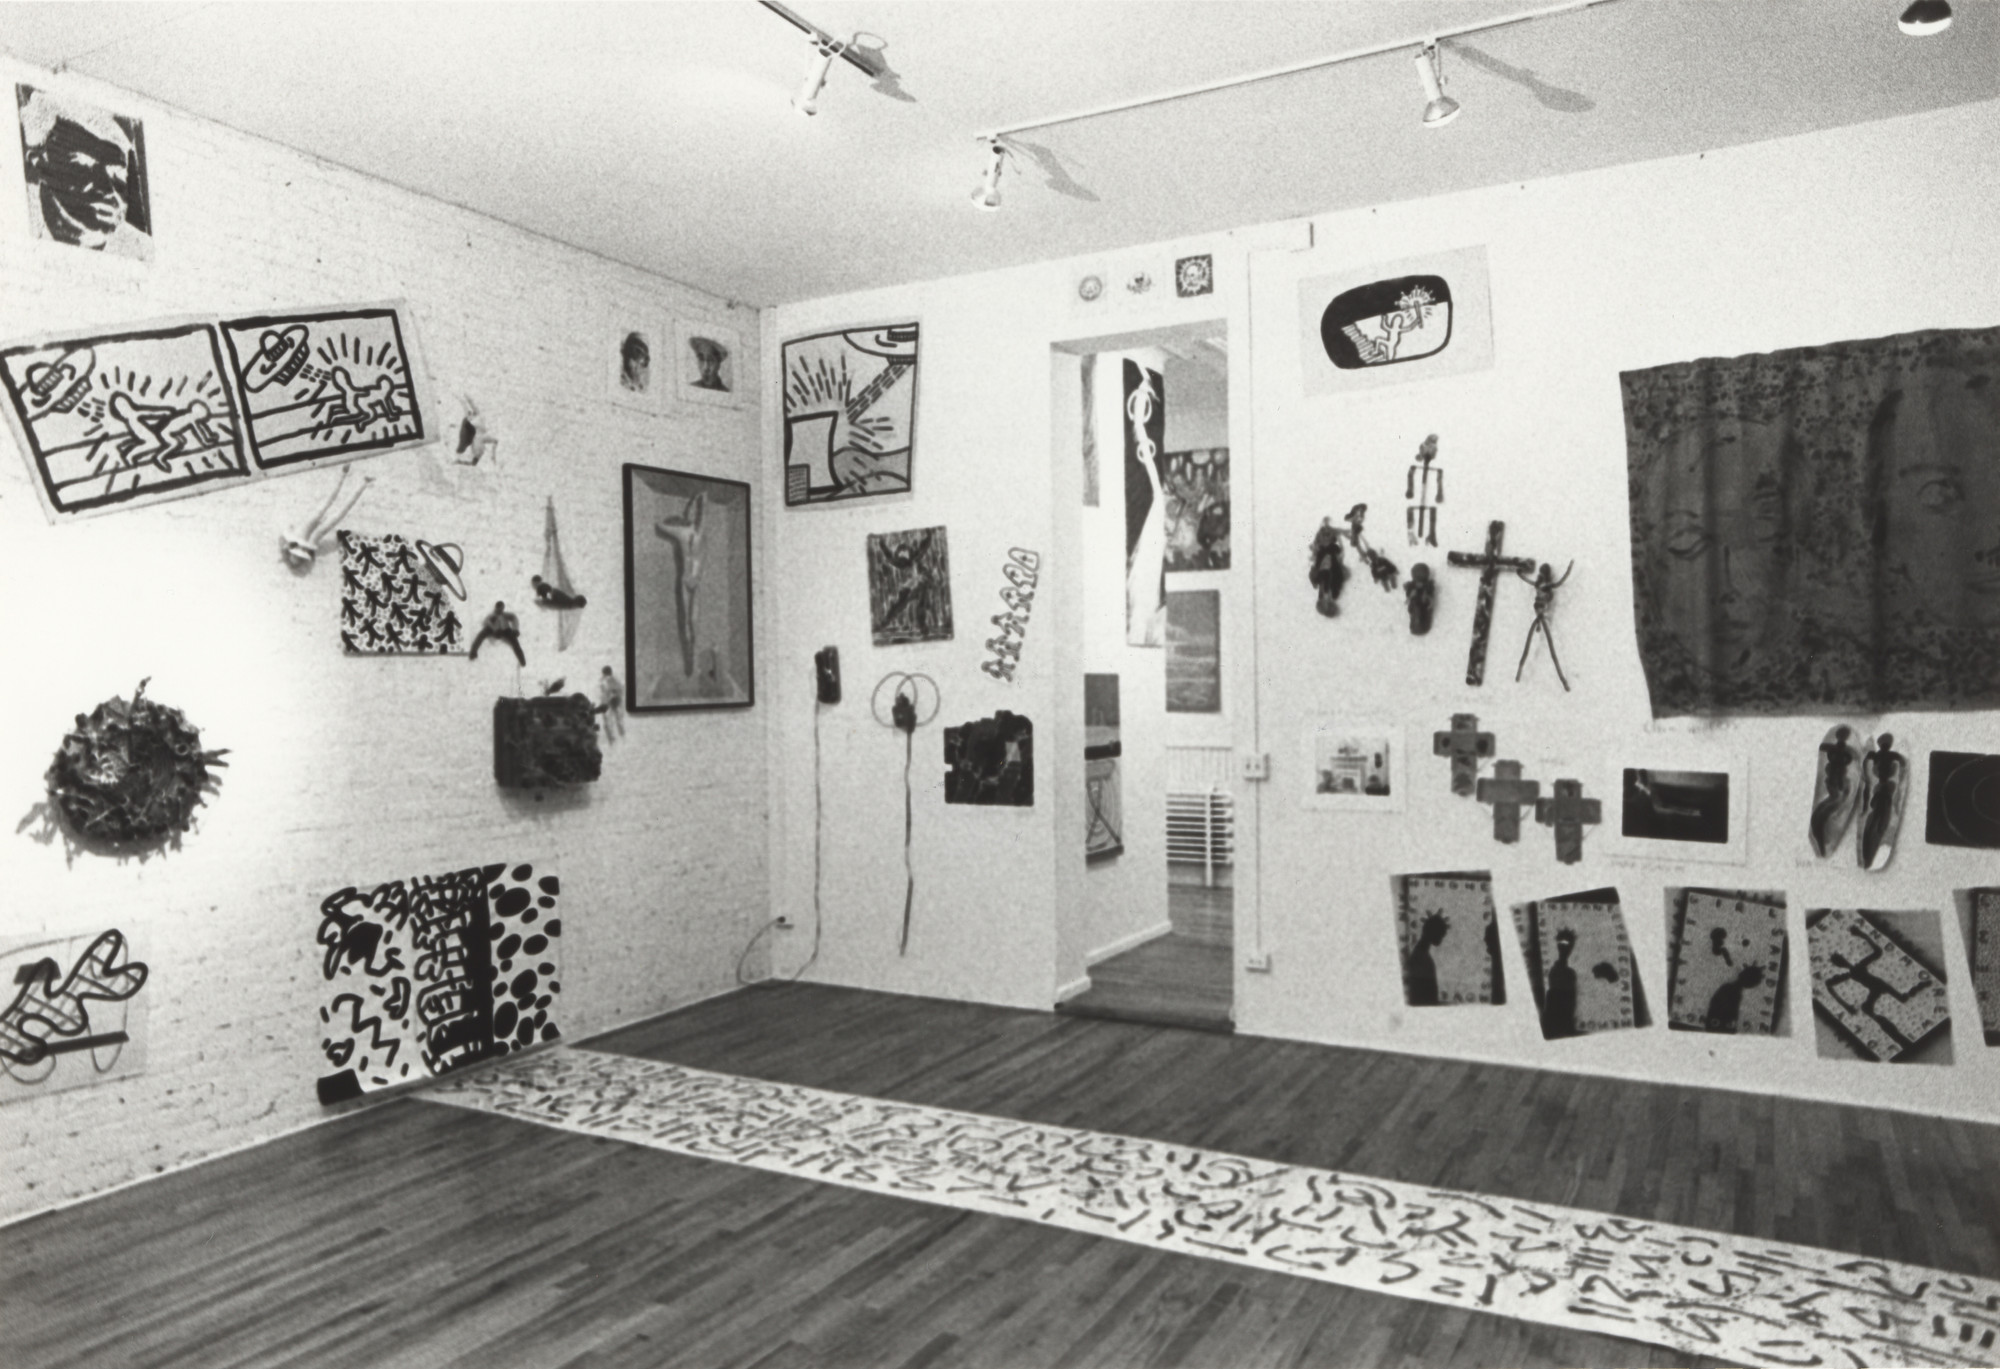 Installation view of the exhibition New York/New Wave, P.S.1 Contemporary Art Center, 1981. MoMA PS1 Archives, III.A.18. The Museum of Modern Art Archives, New York